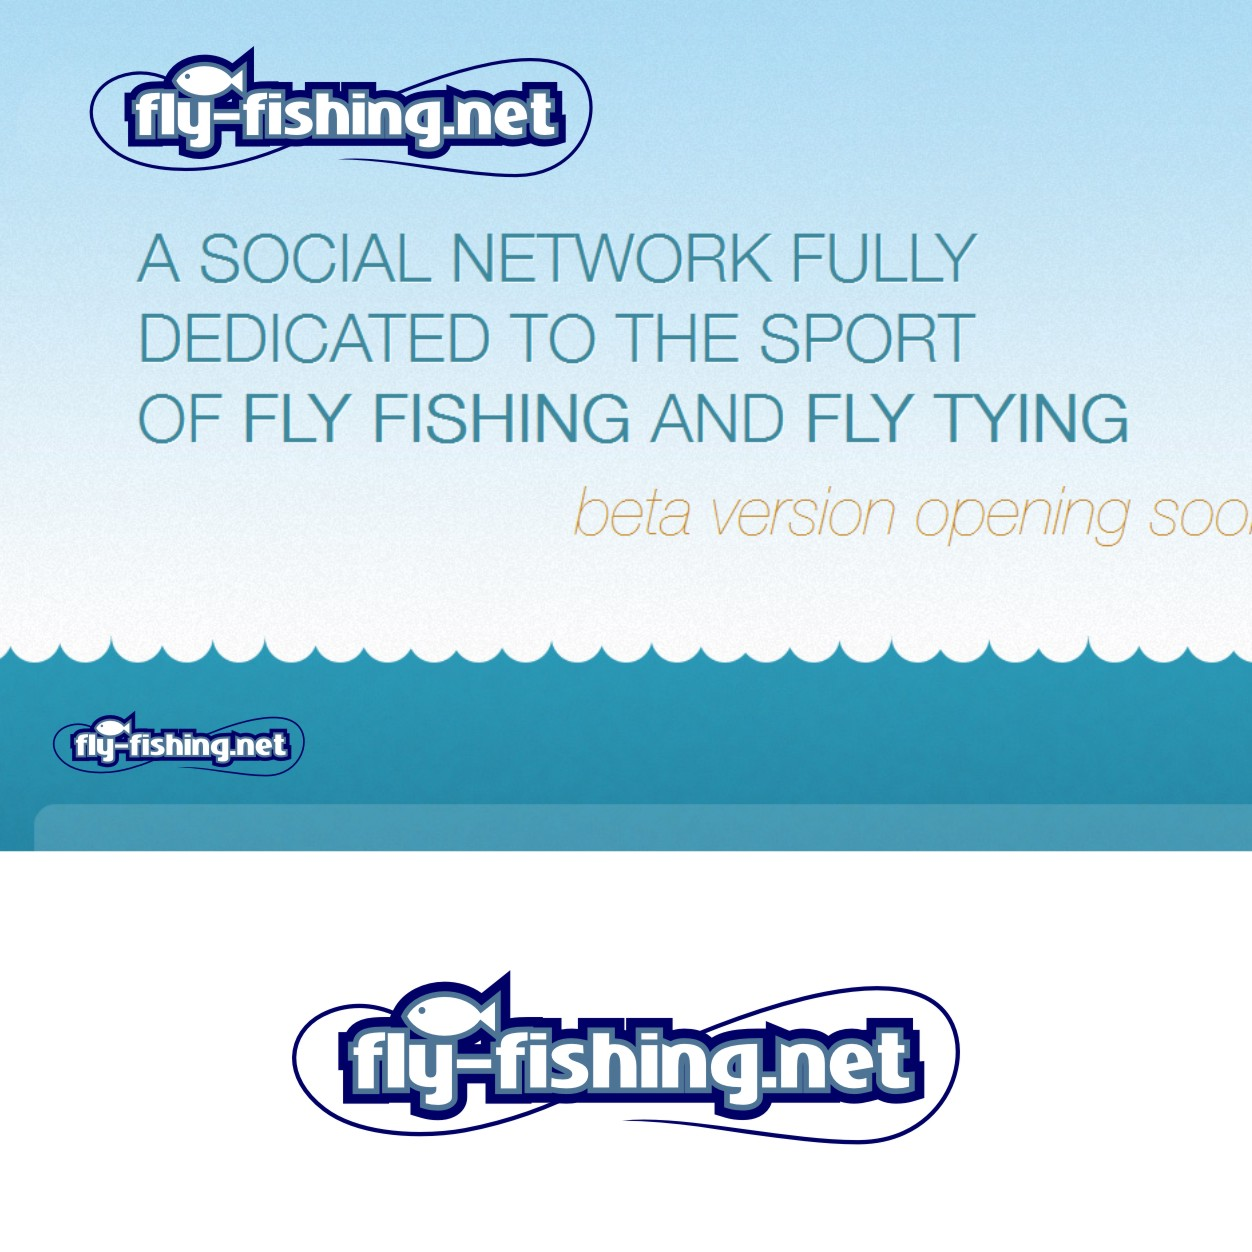 Logo Design by Private User - Entry No. 25 in the Logo Design Contest Artistic Logo Design for fly-fishing.net.